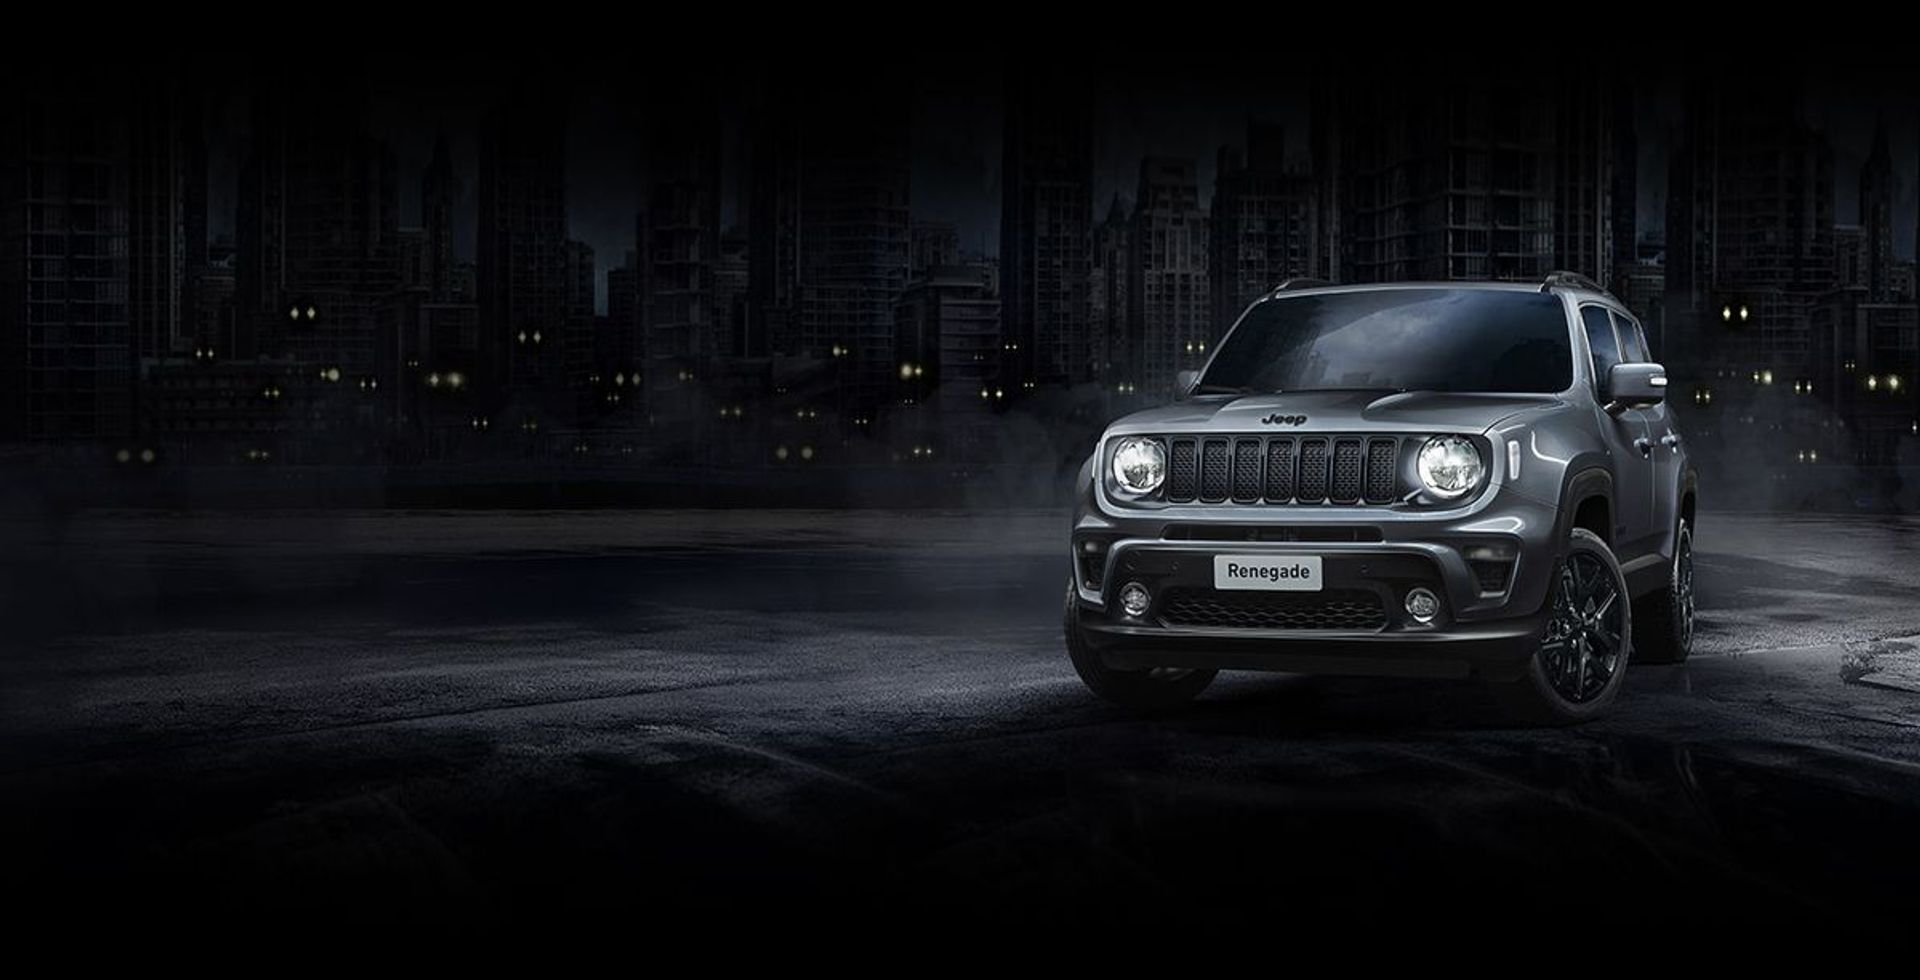 Jeep Renegade 75th Anniversary image